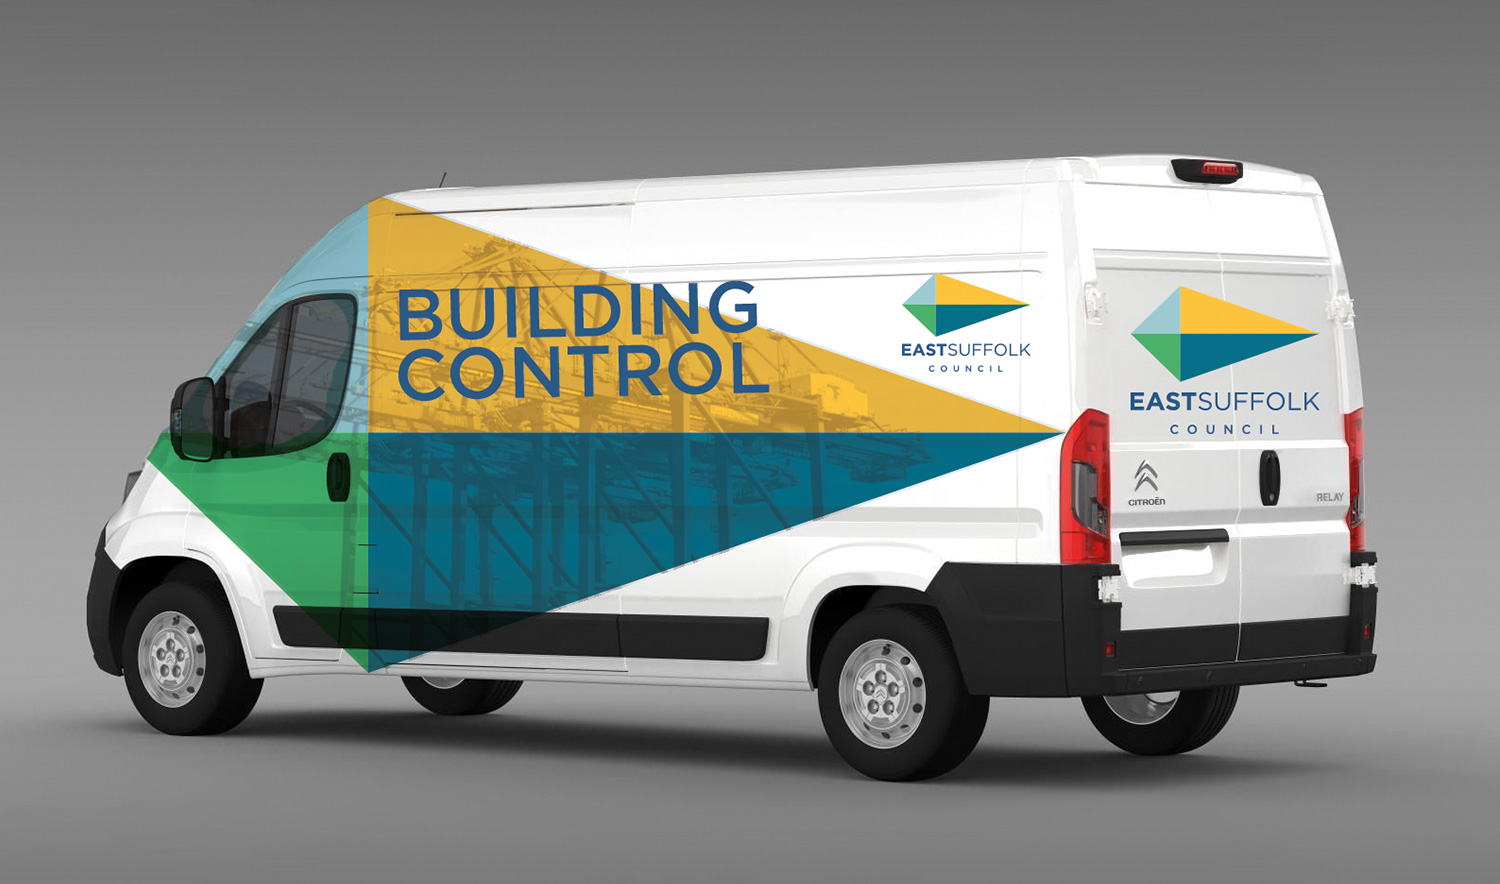 East Suffolk Council logo on a van